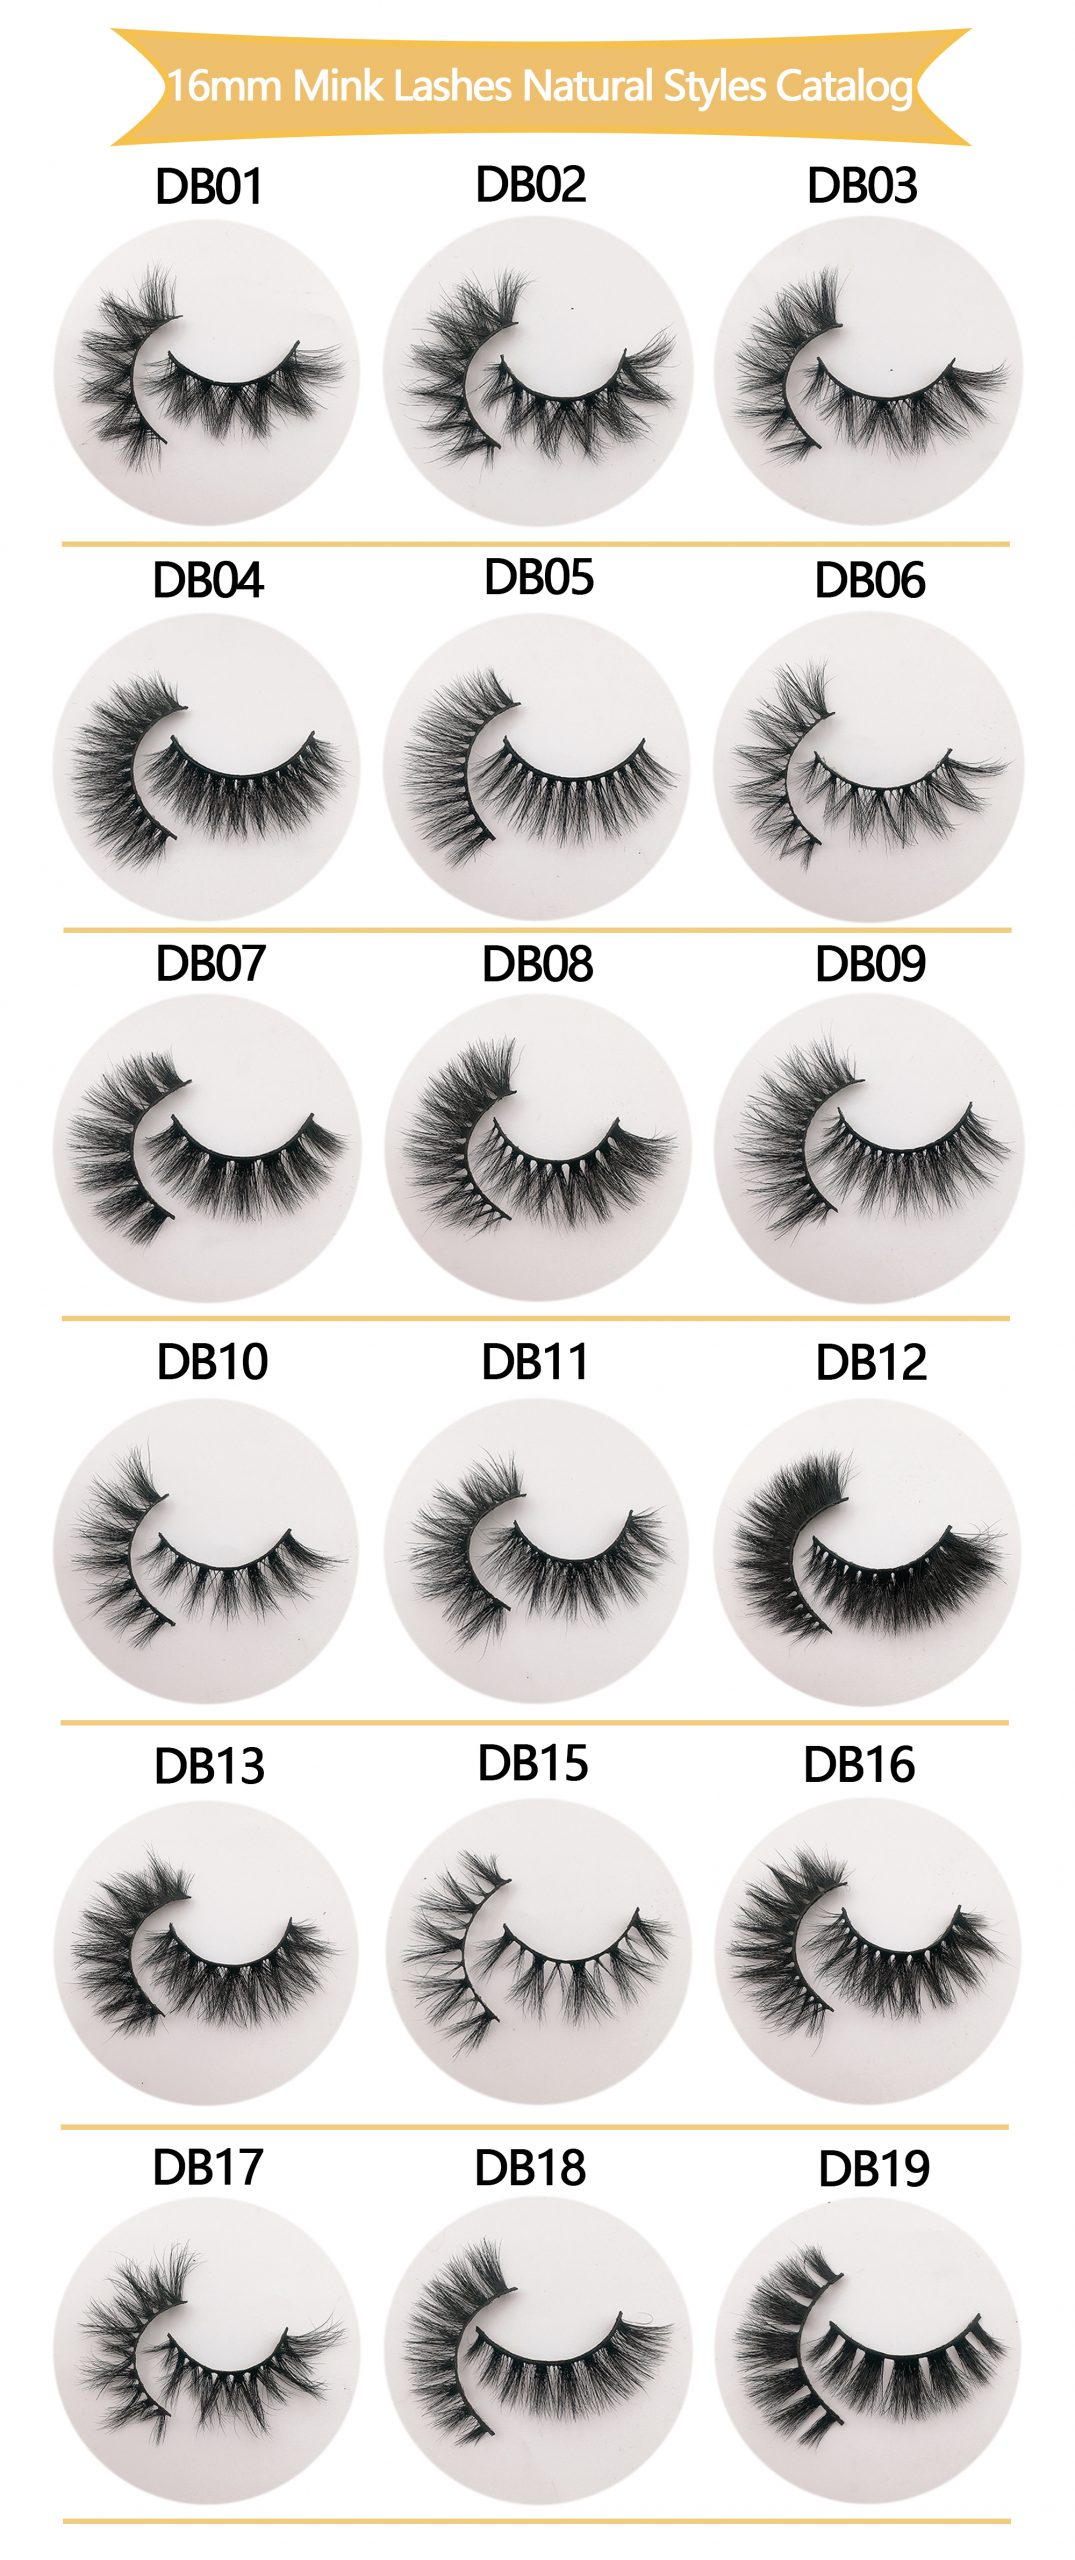 3D Mink Lashes wholesale 16mm eyelashes